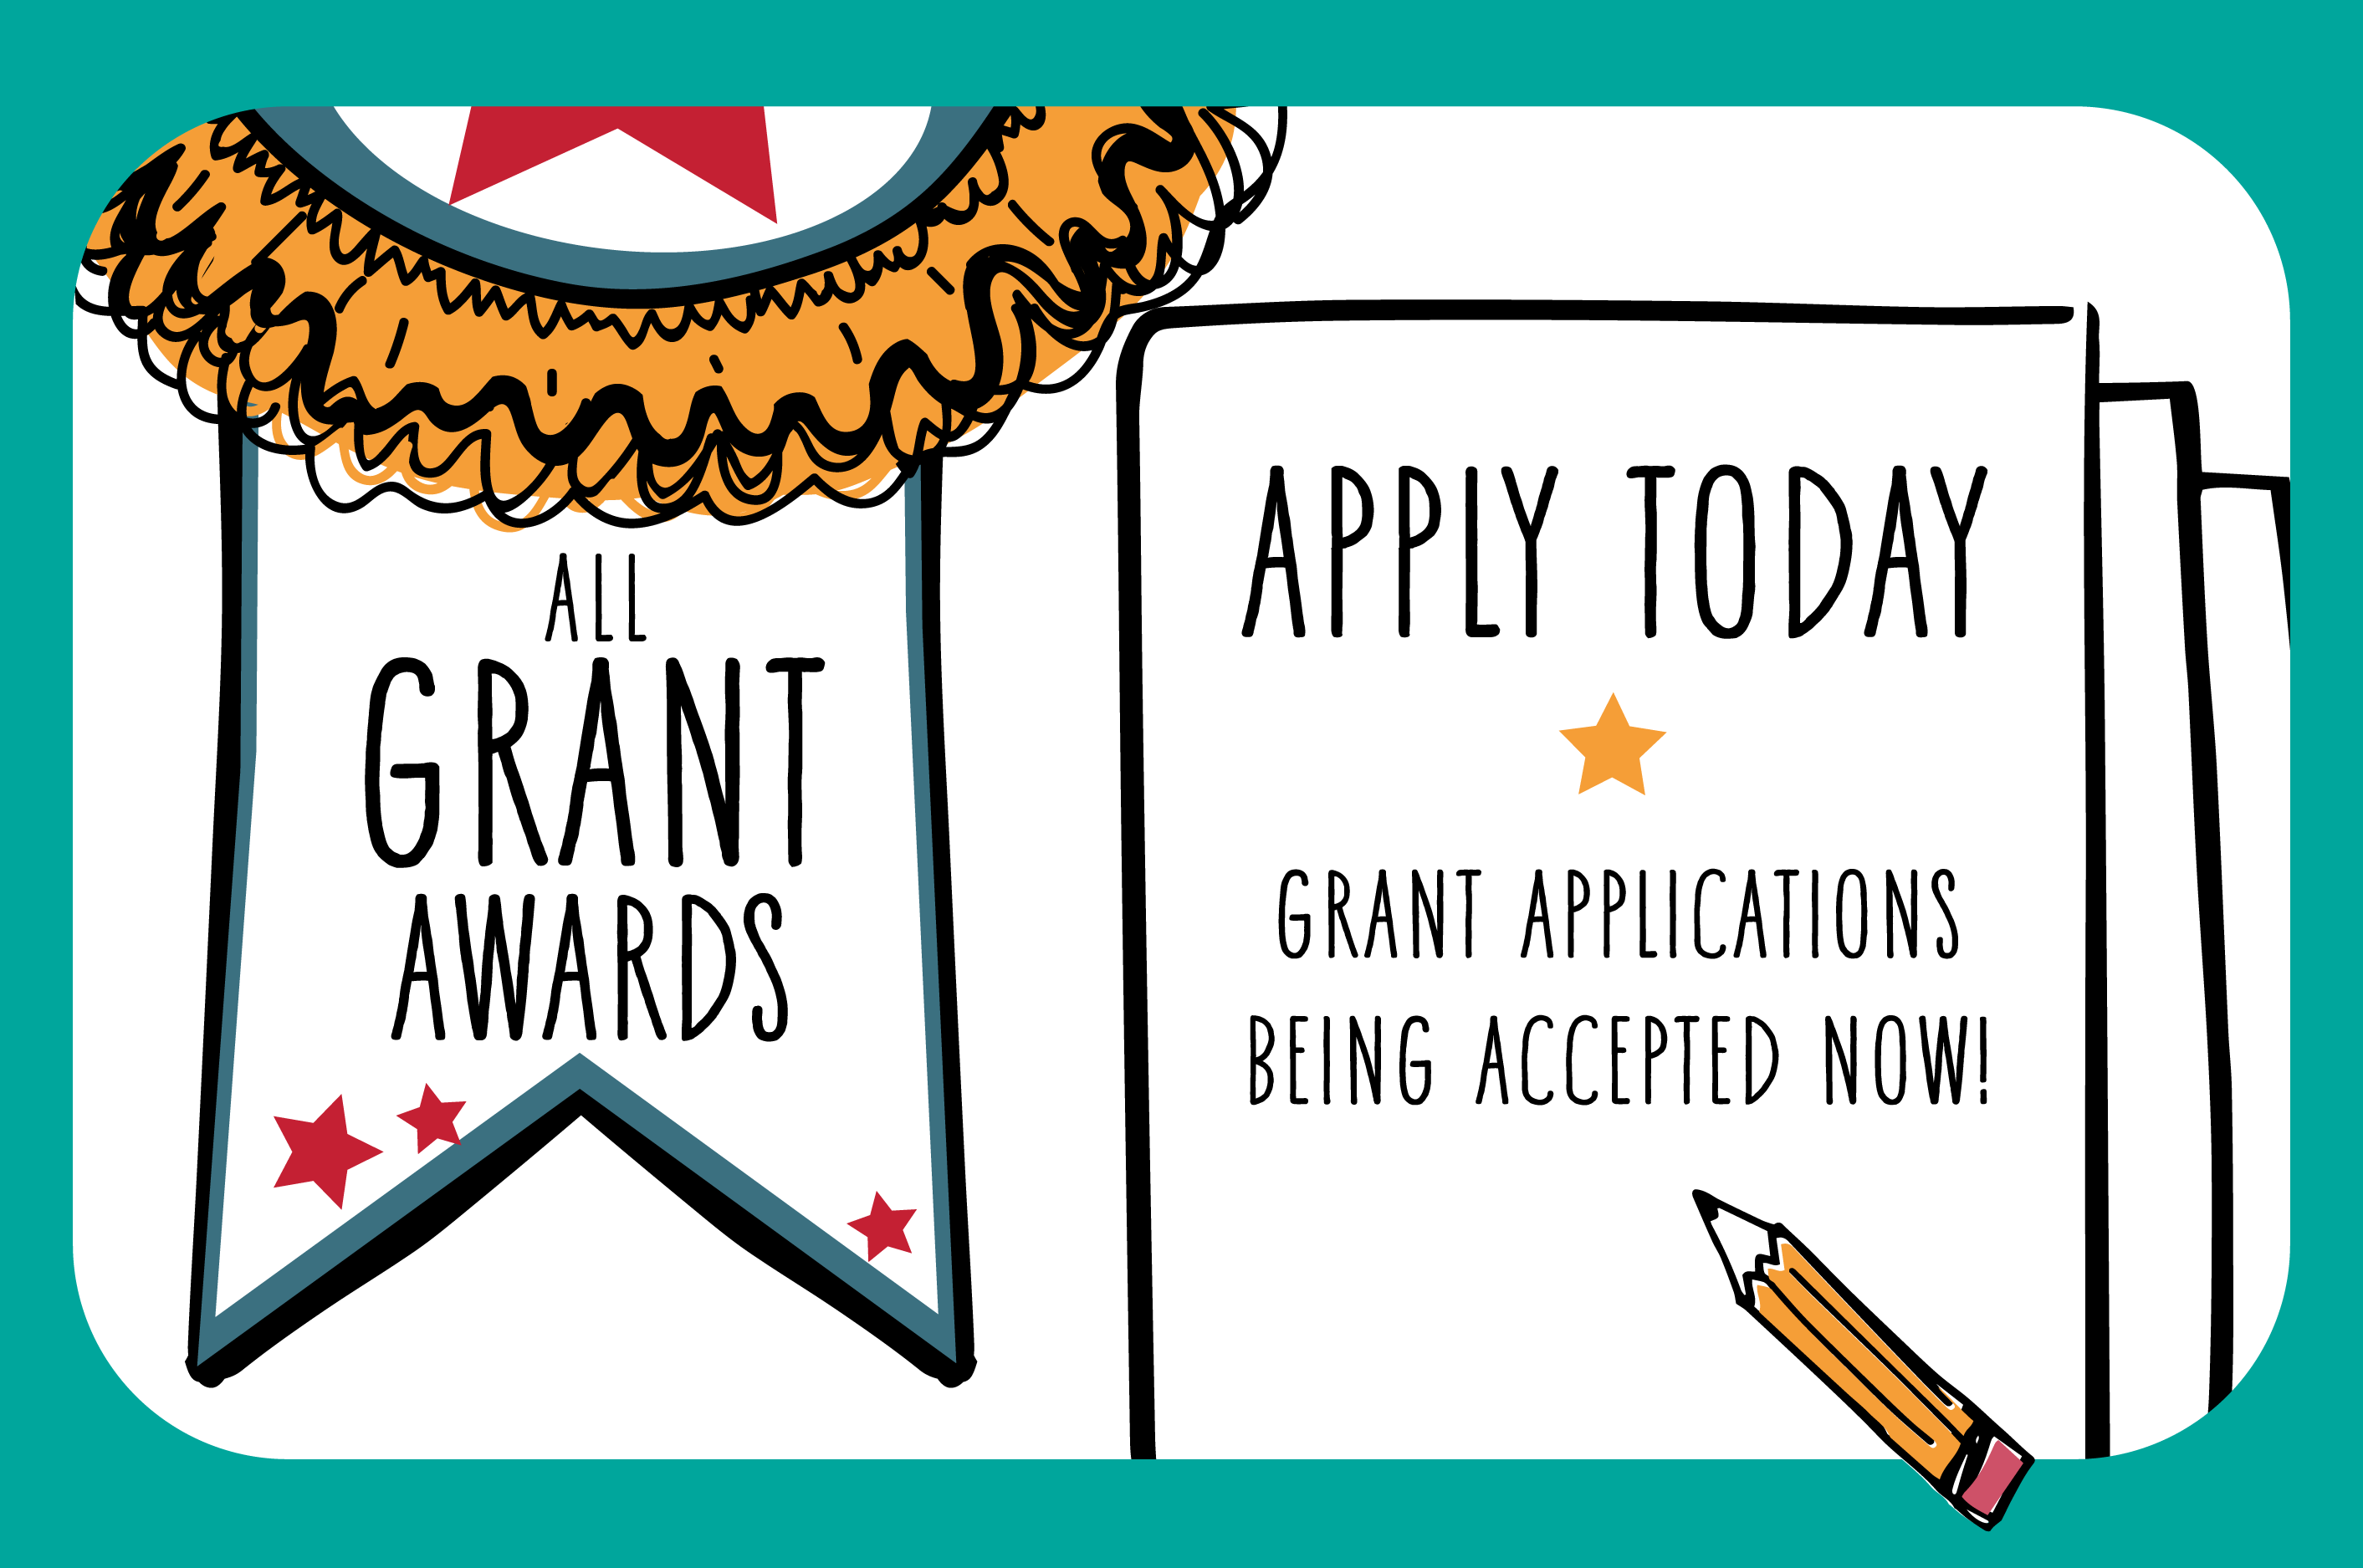 All Grant Awards Apply Today Carousel